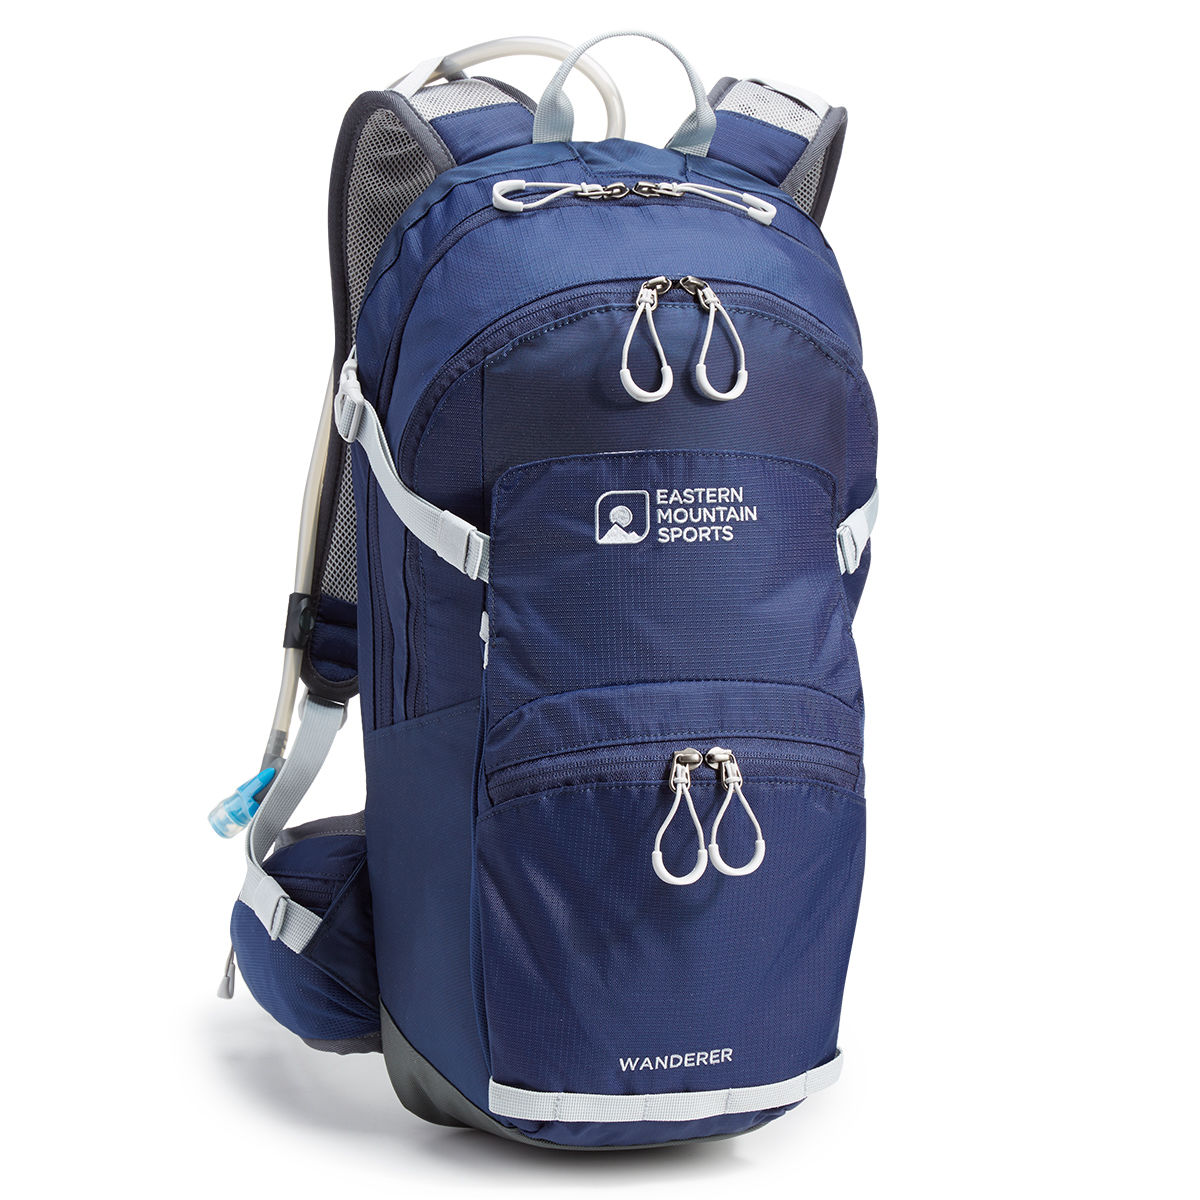 EMS Wanderer Hydration Pack